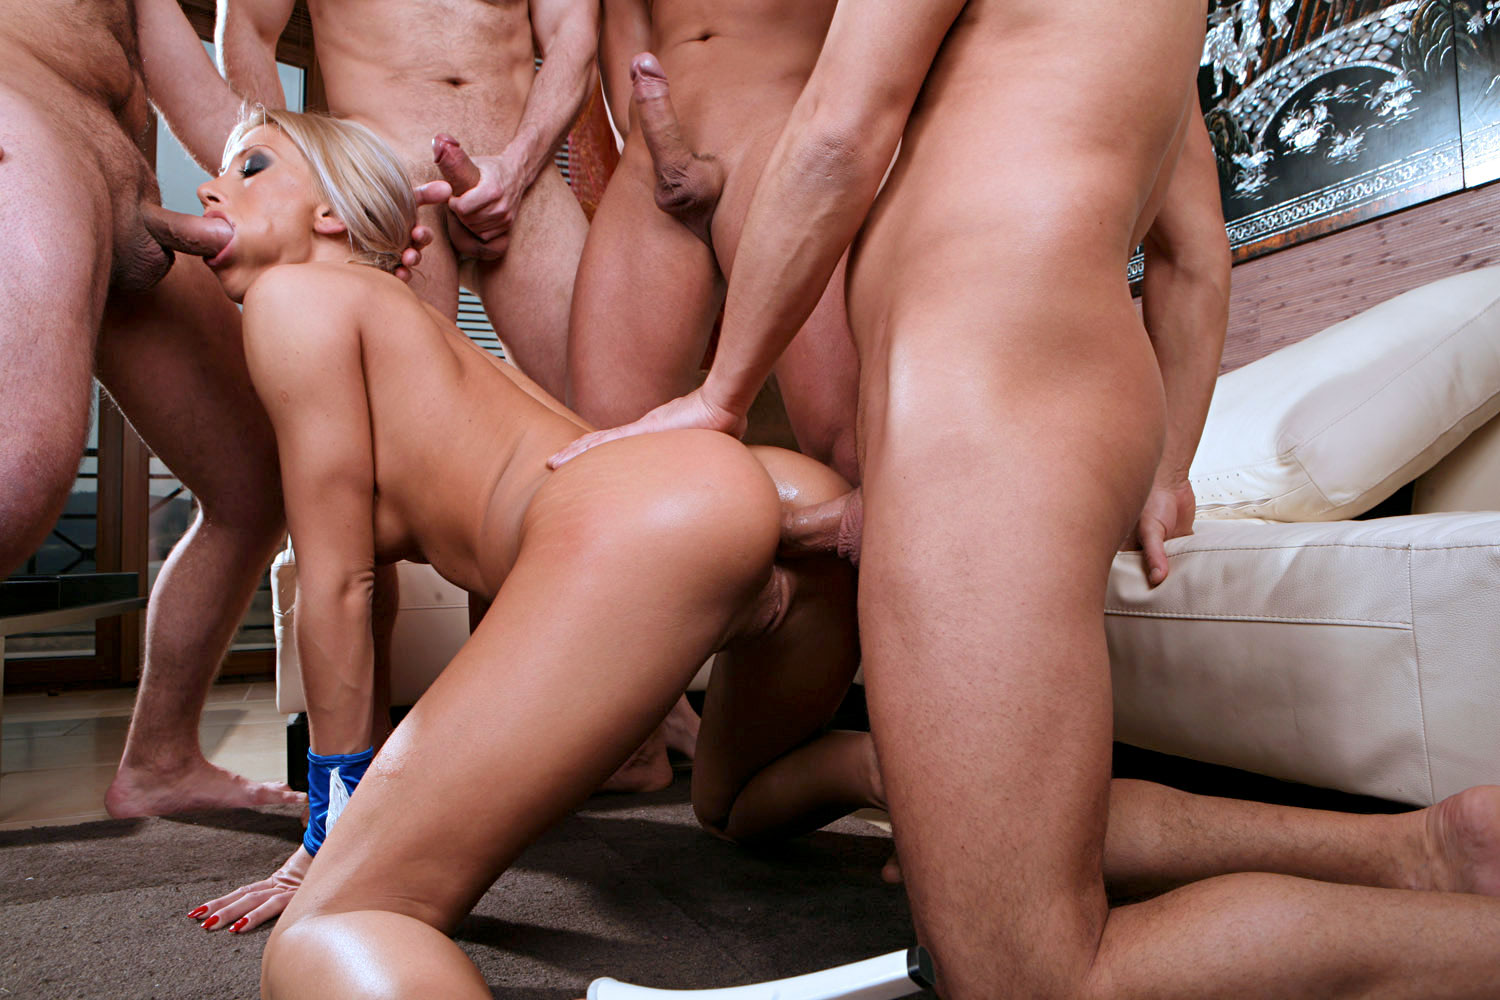 gang-bang-orgy-sex-hot-sex